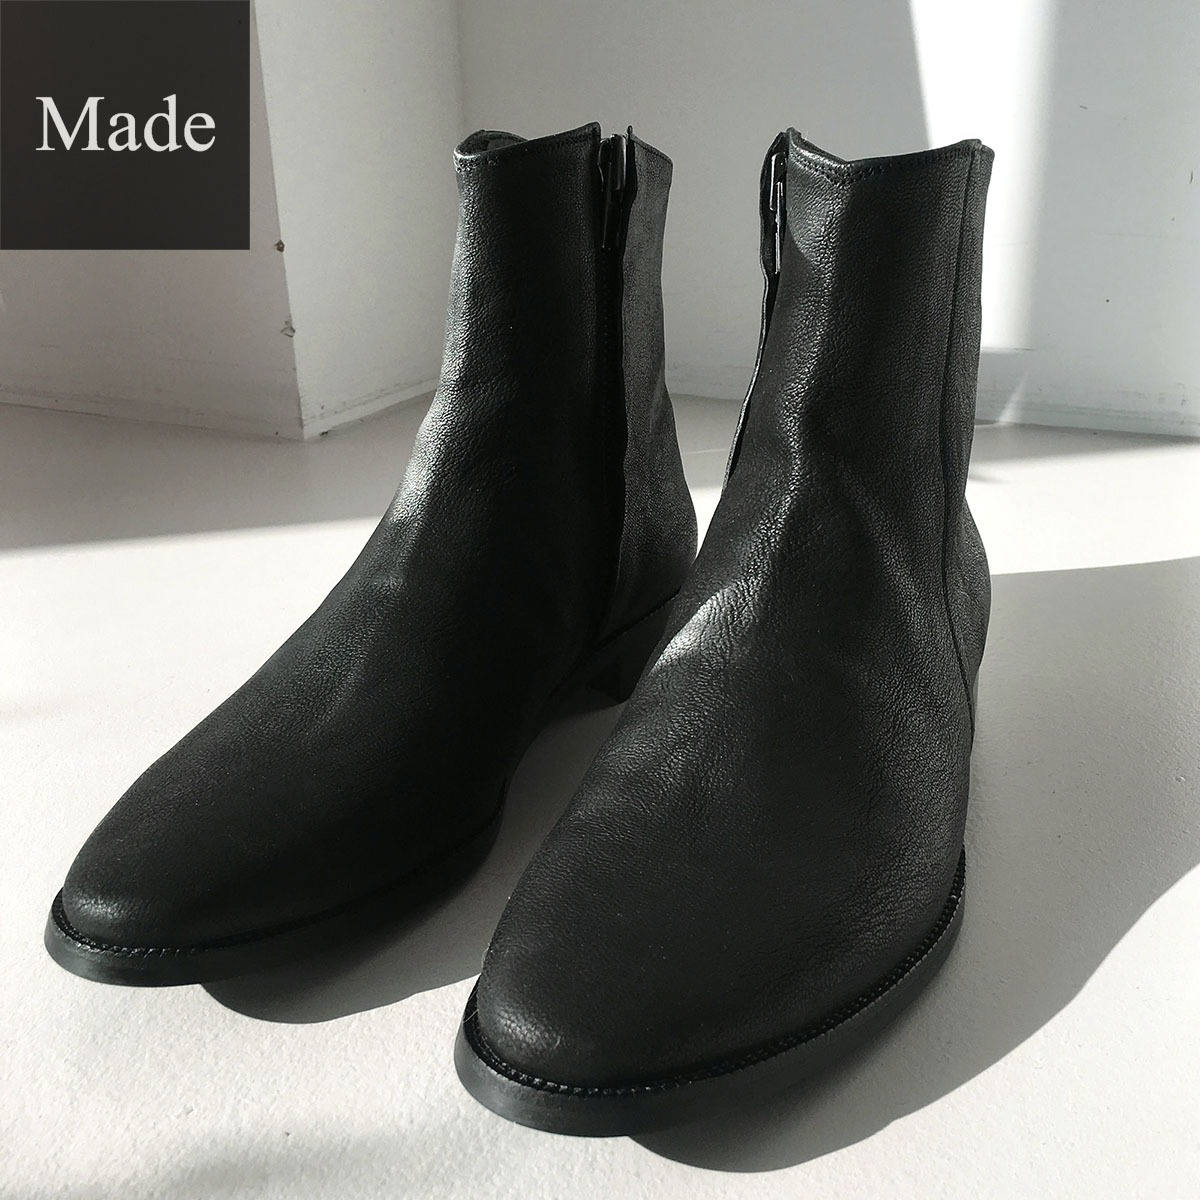 [Hank]Washed Sheep Leather Boots